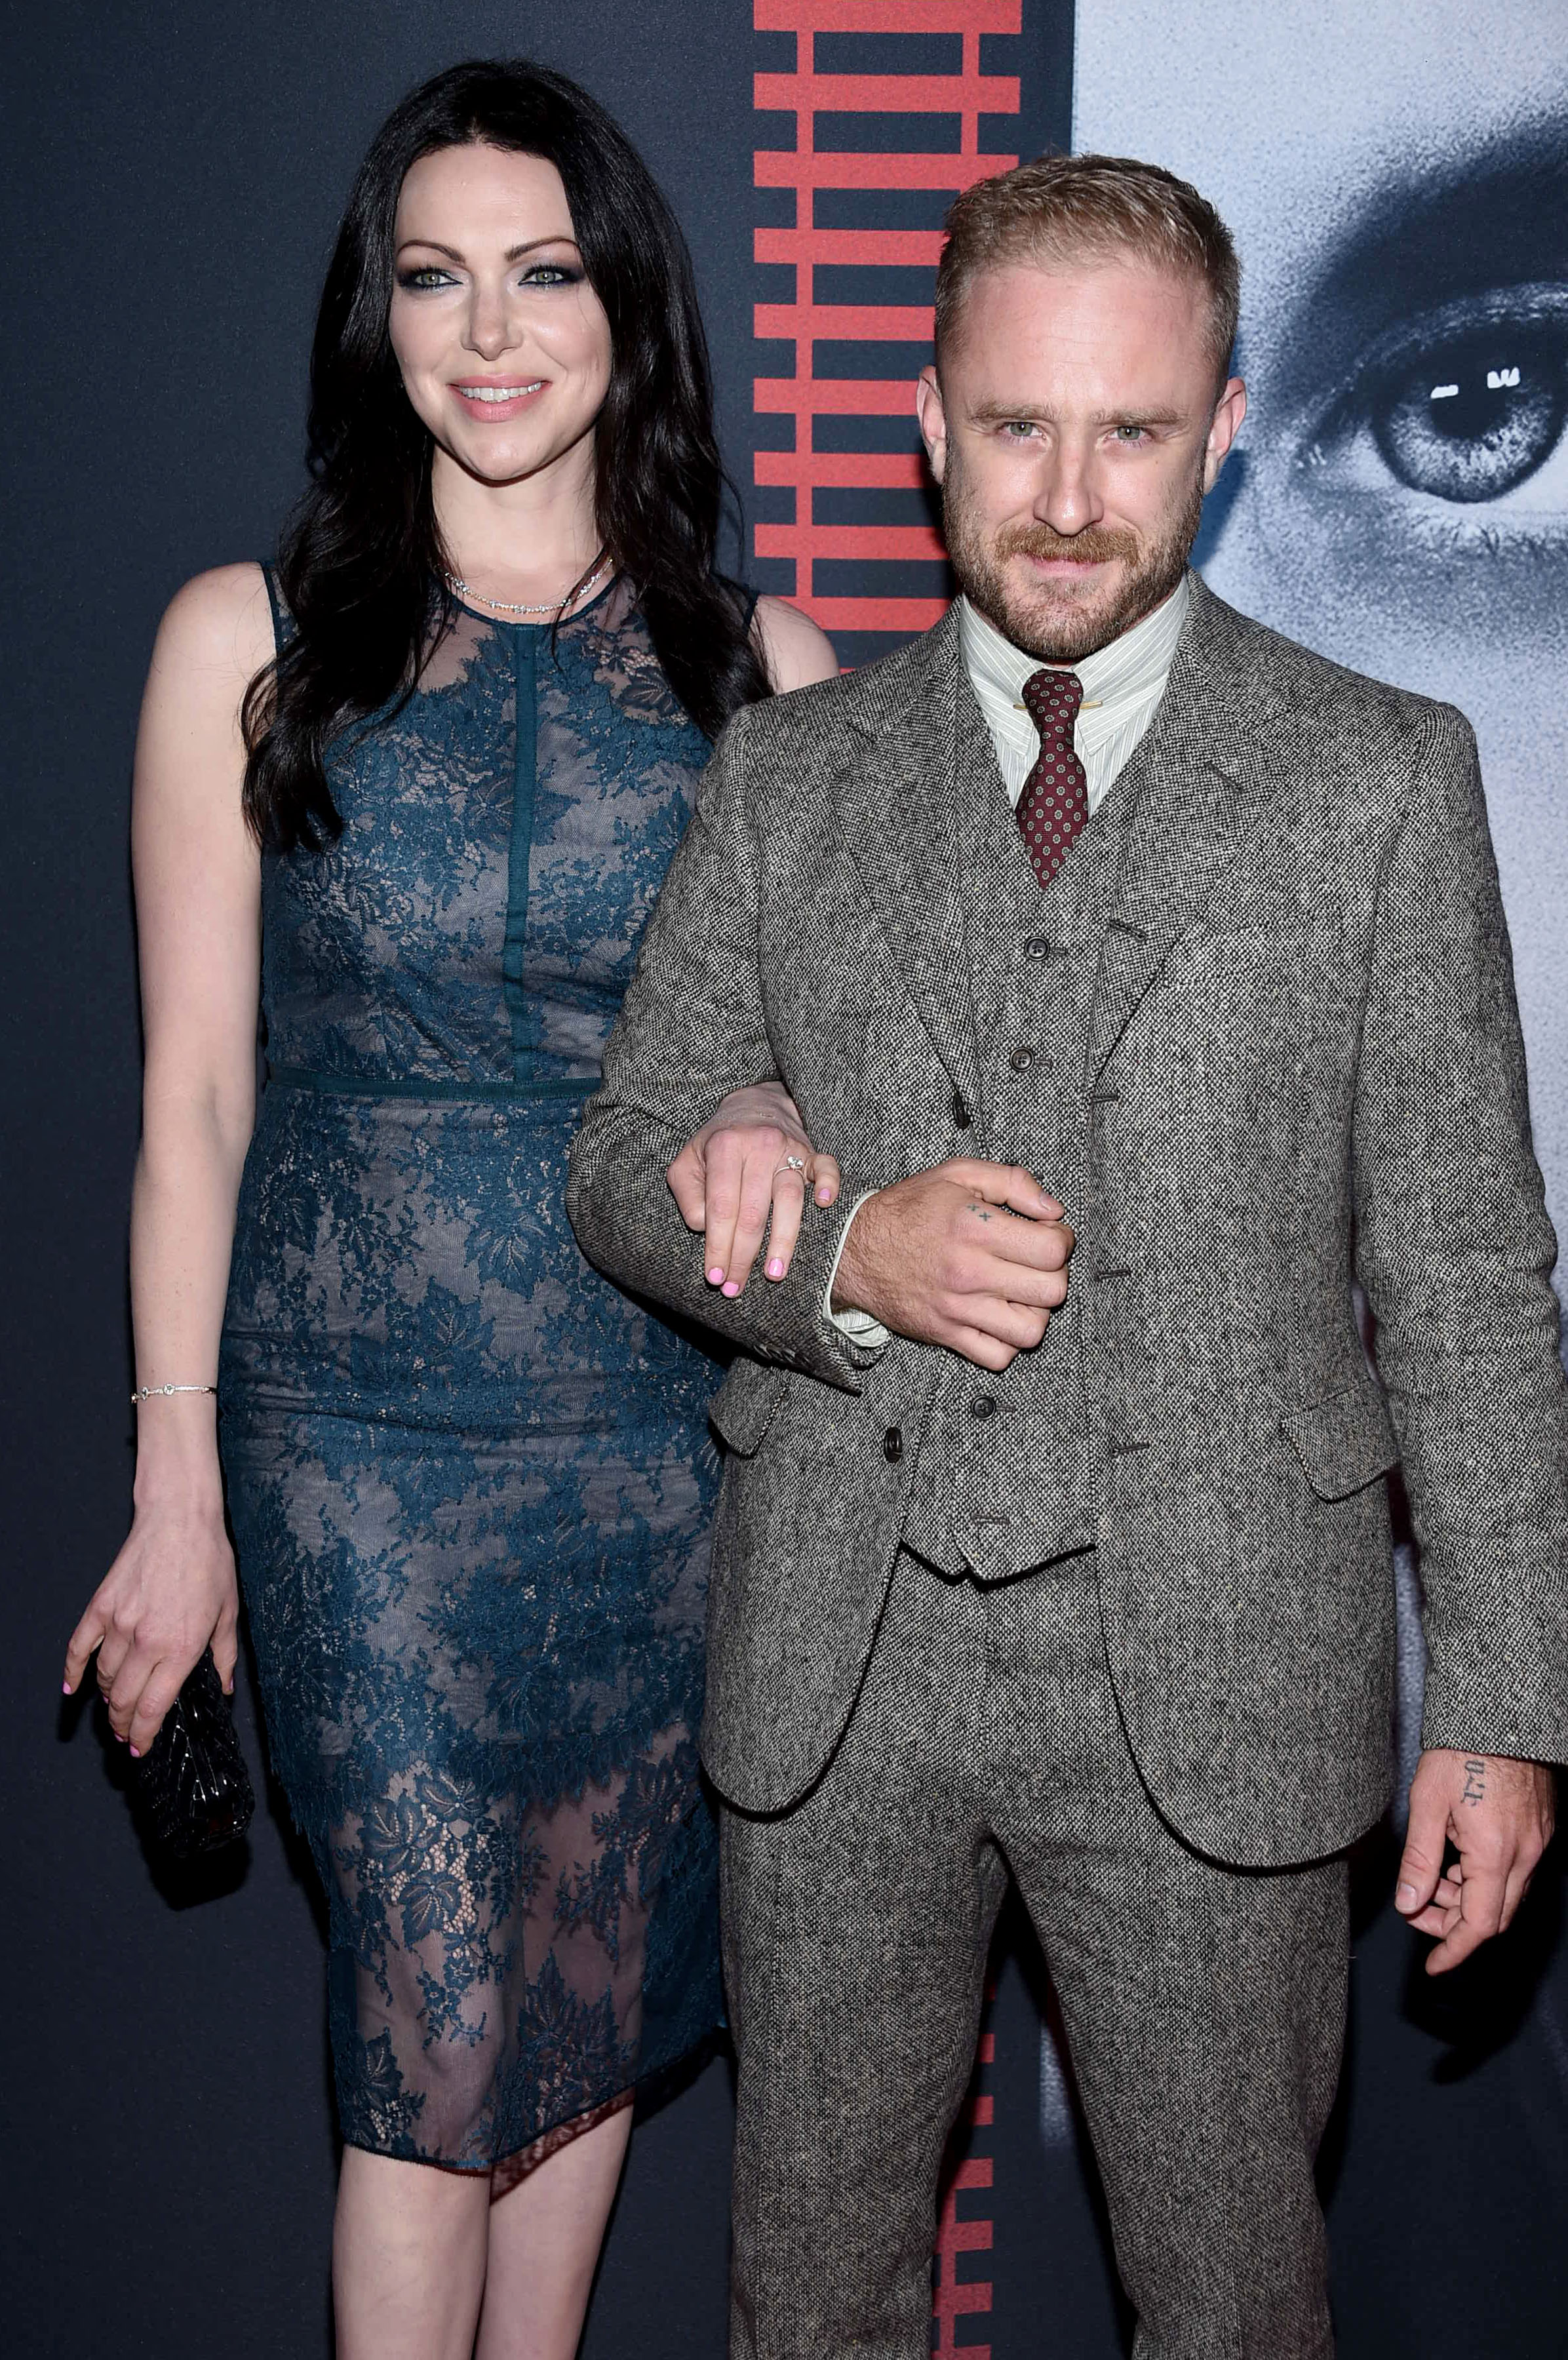 Christopher masterson dating laura prepon